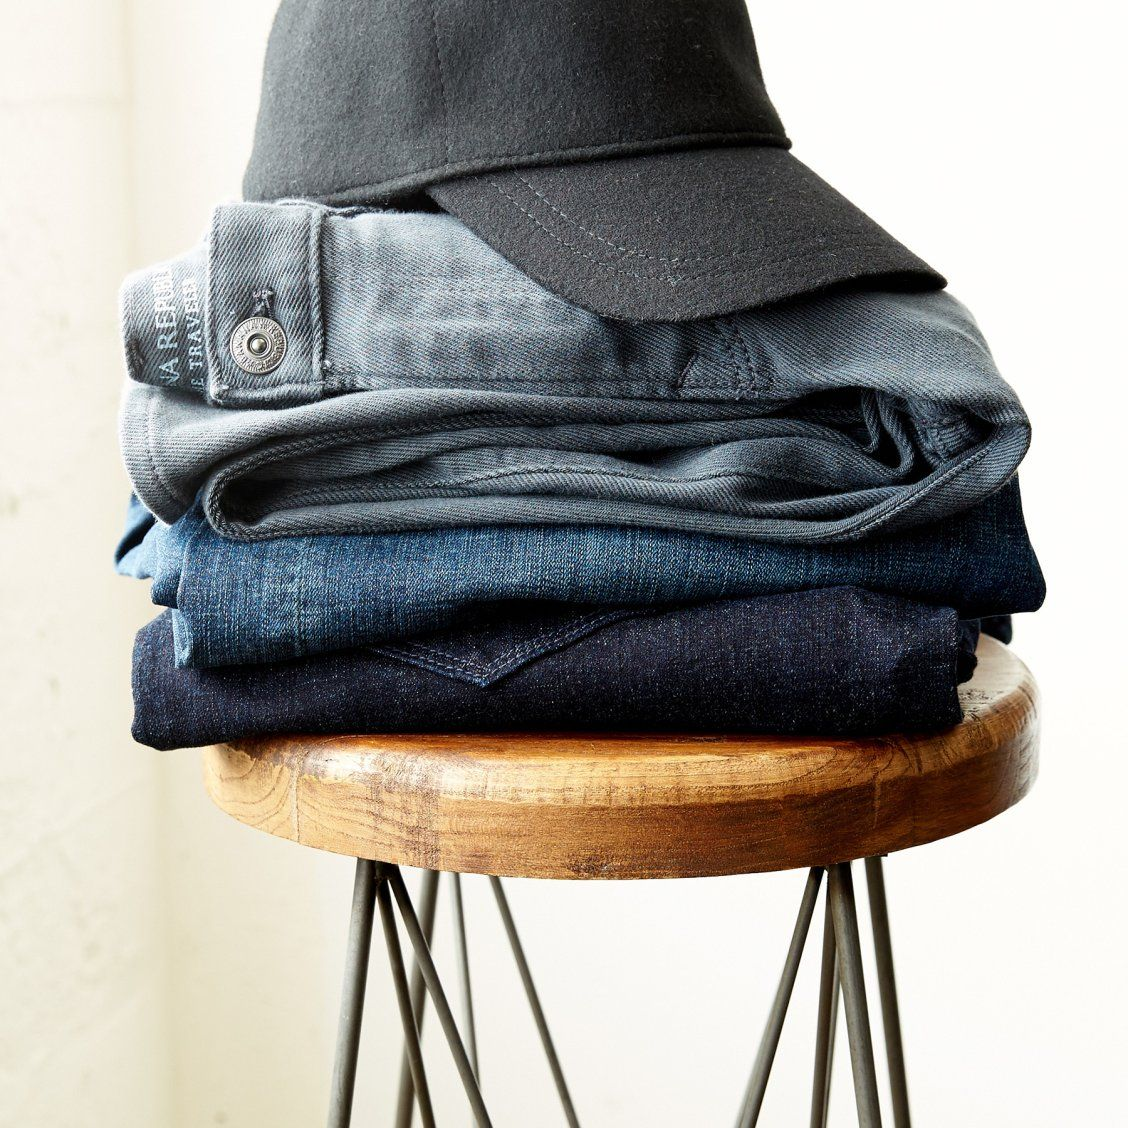 no say why should comforter men most uufaciqf comfortable pants mens not skinny to tight wear reasons jeans